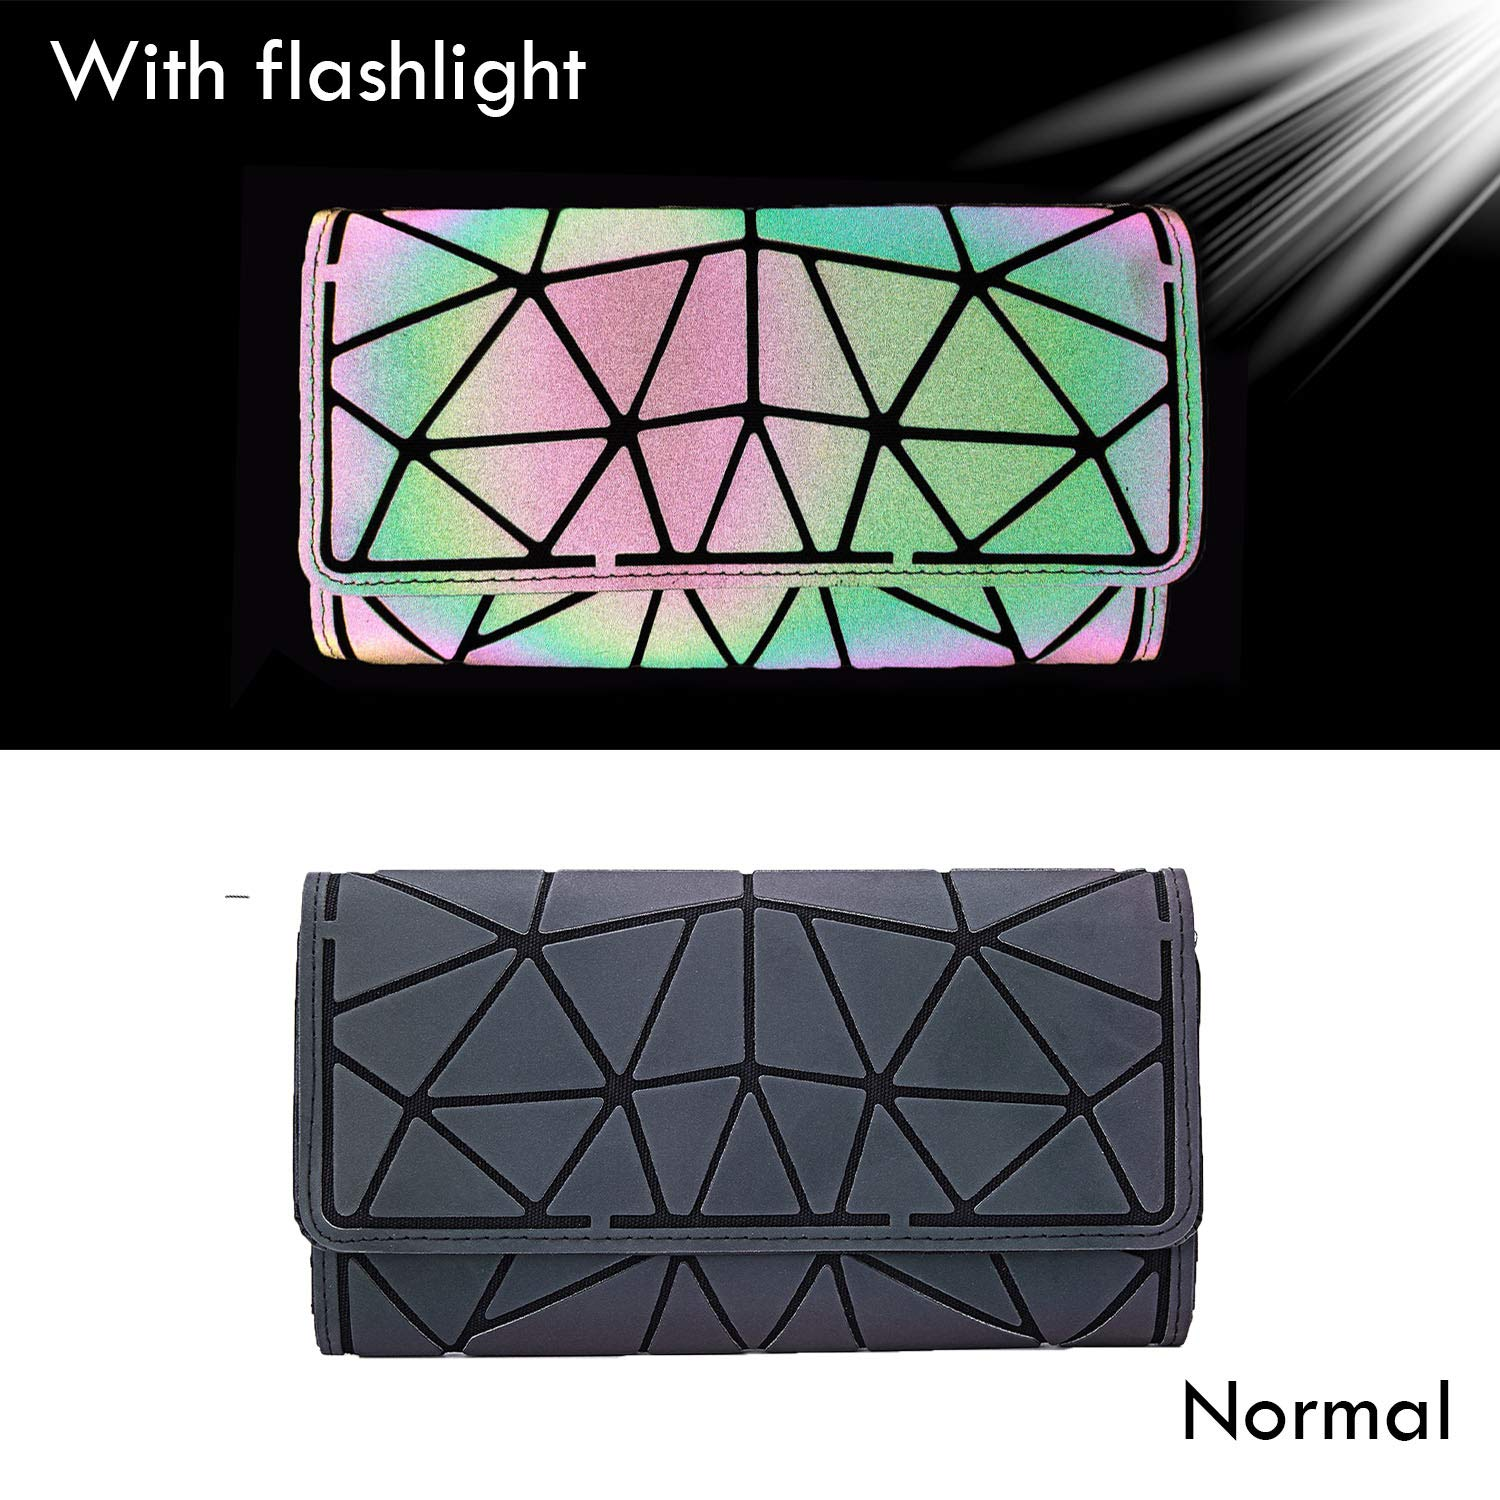 Harlermoon Geometric Luminous Holographic Purses and Handbags Flash Reflactive Tote for Women … (wallet) by Harlermoon (Image #2)